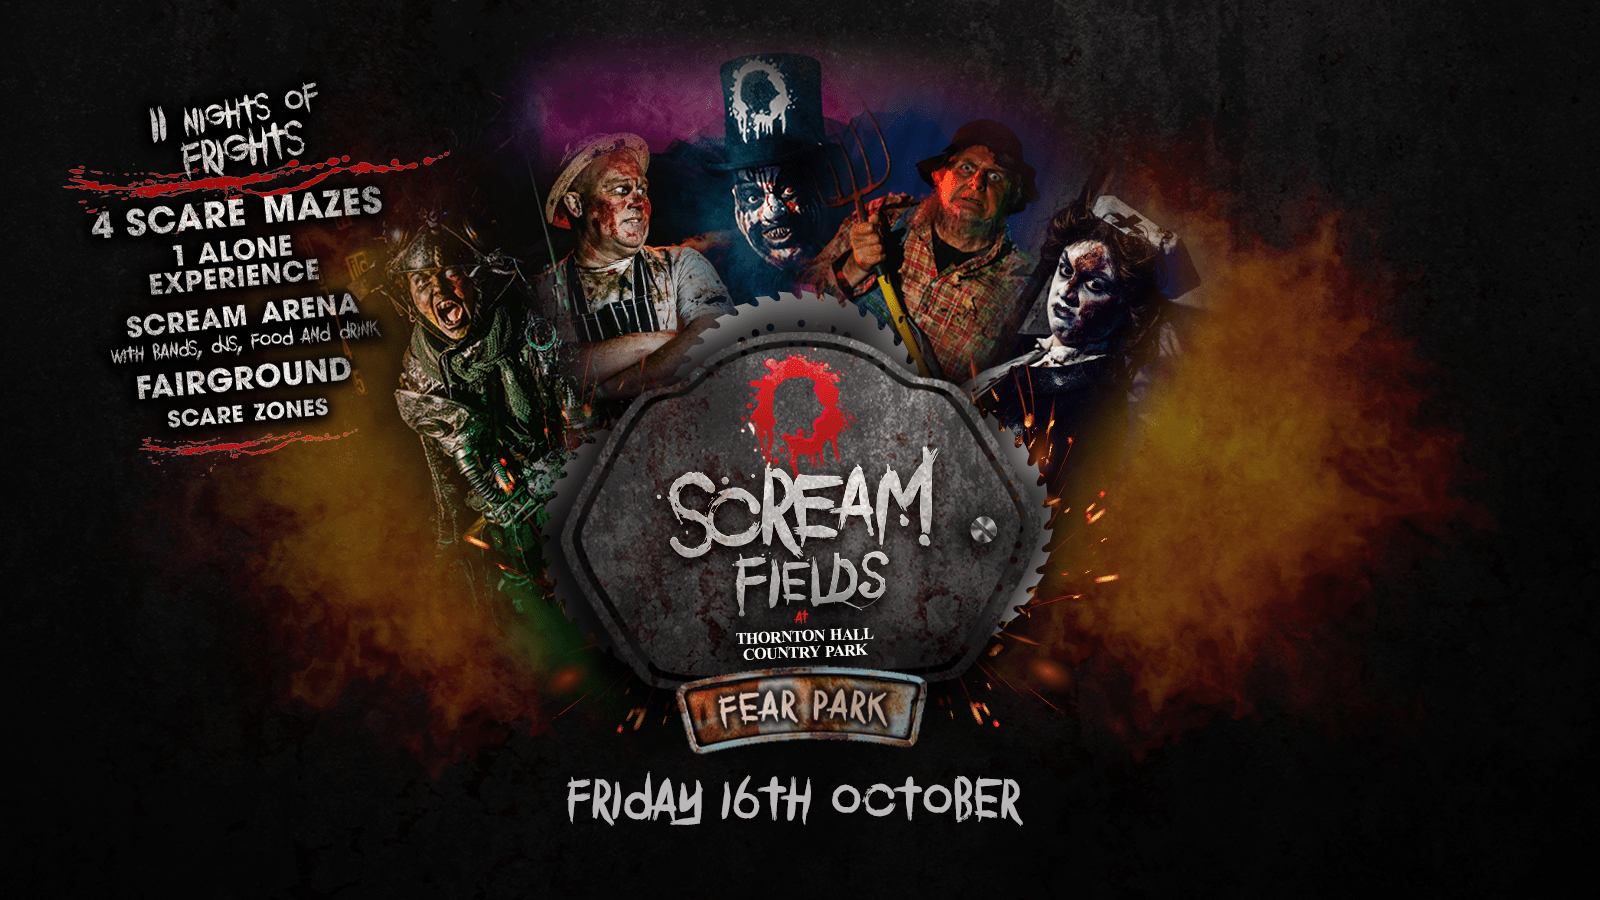 7.30PM – Screamfields: Friday 16th October 2020